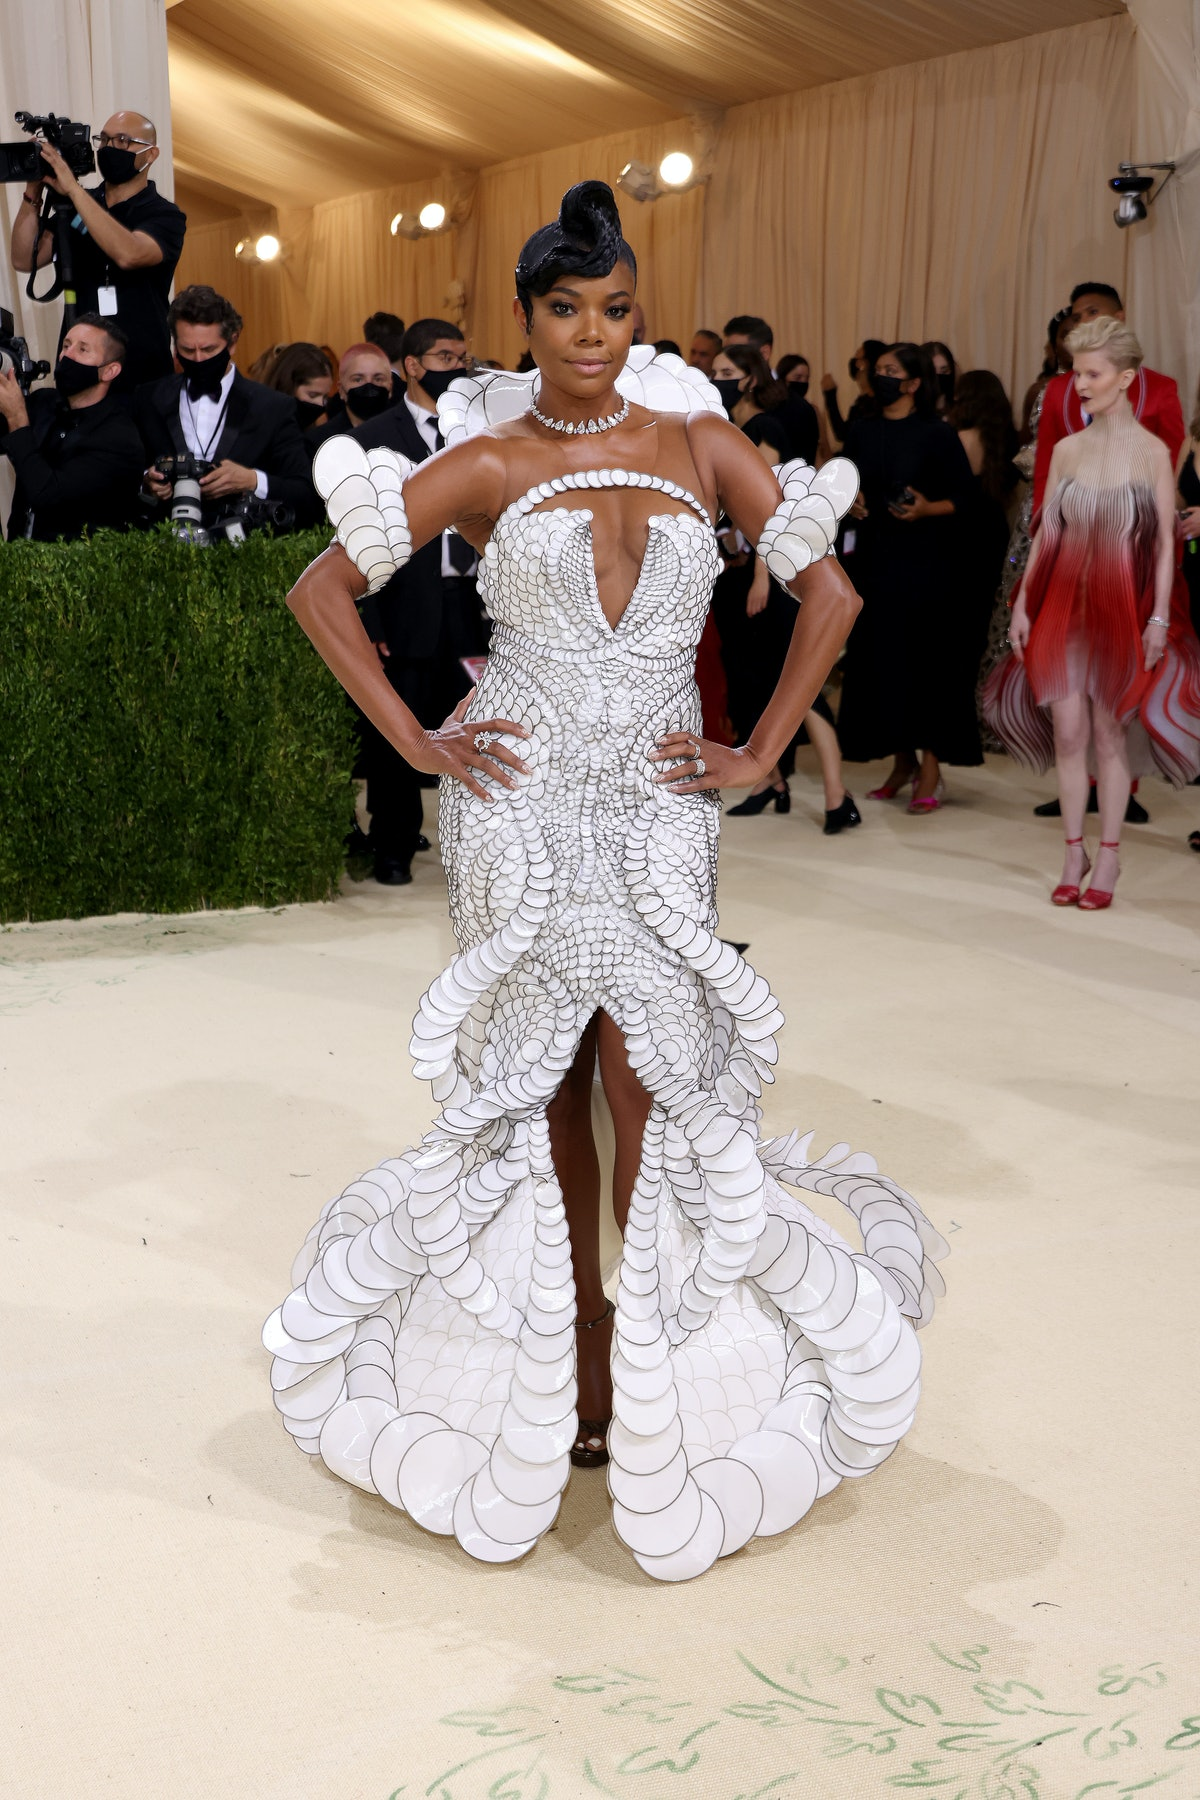 Gabrielle Union attends The 2021 Met Gala Celebrating In America: A Lexicon Of Fashion at Metropolit...